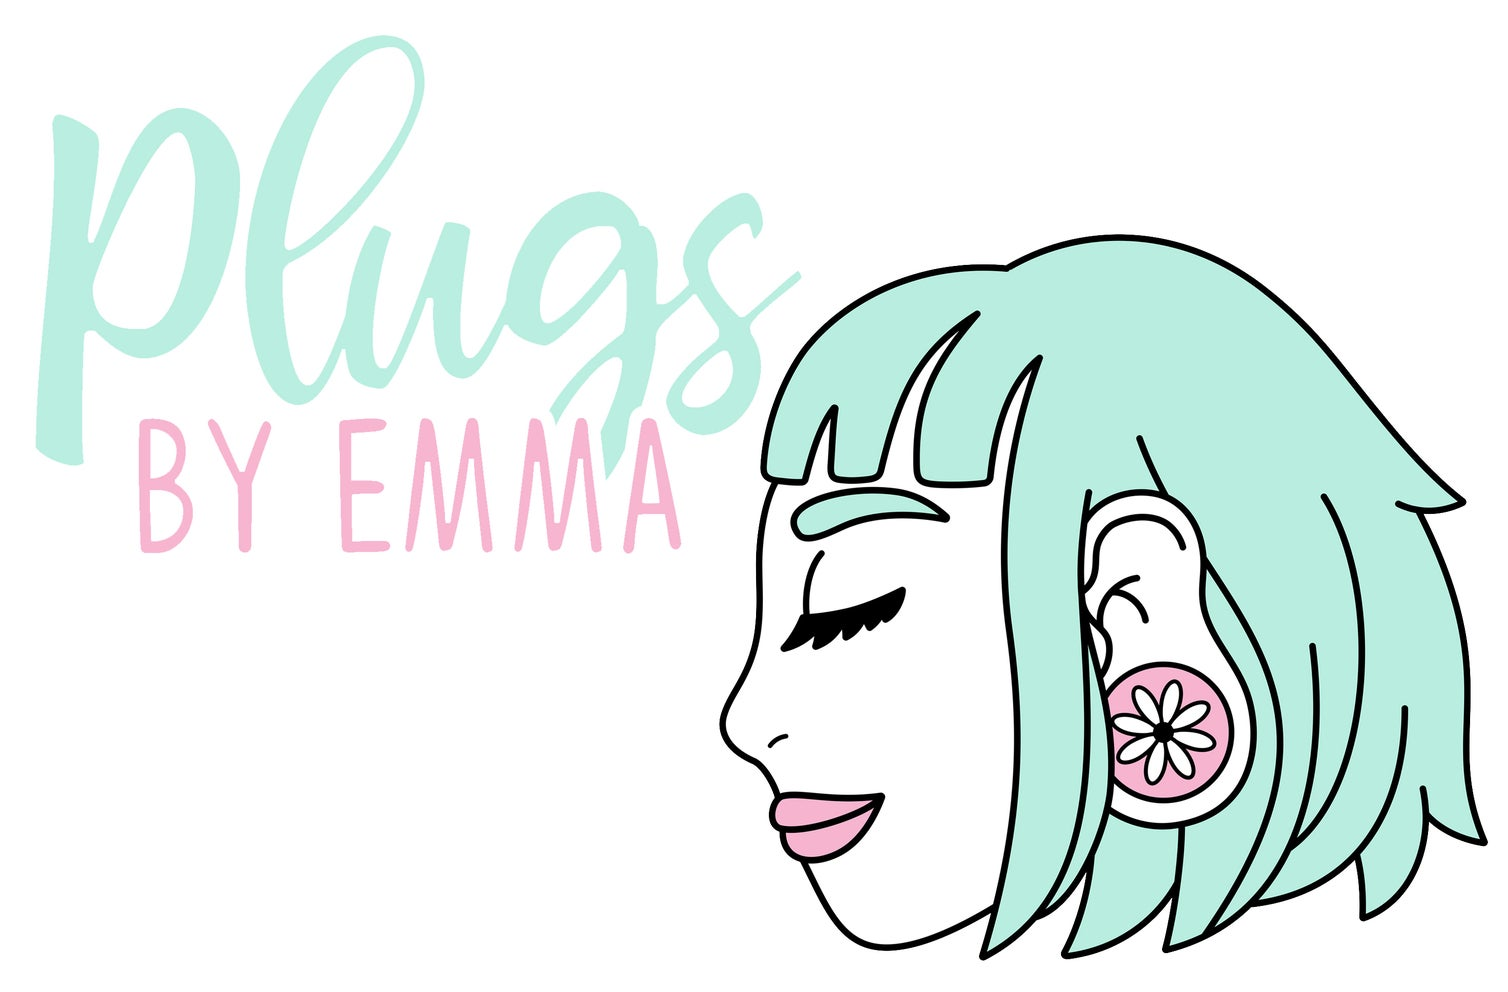 Plugs By Emma